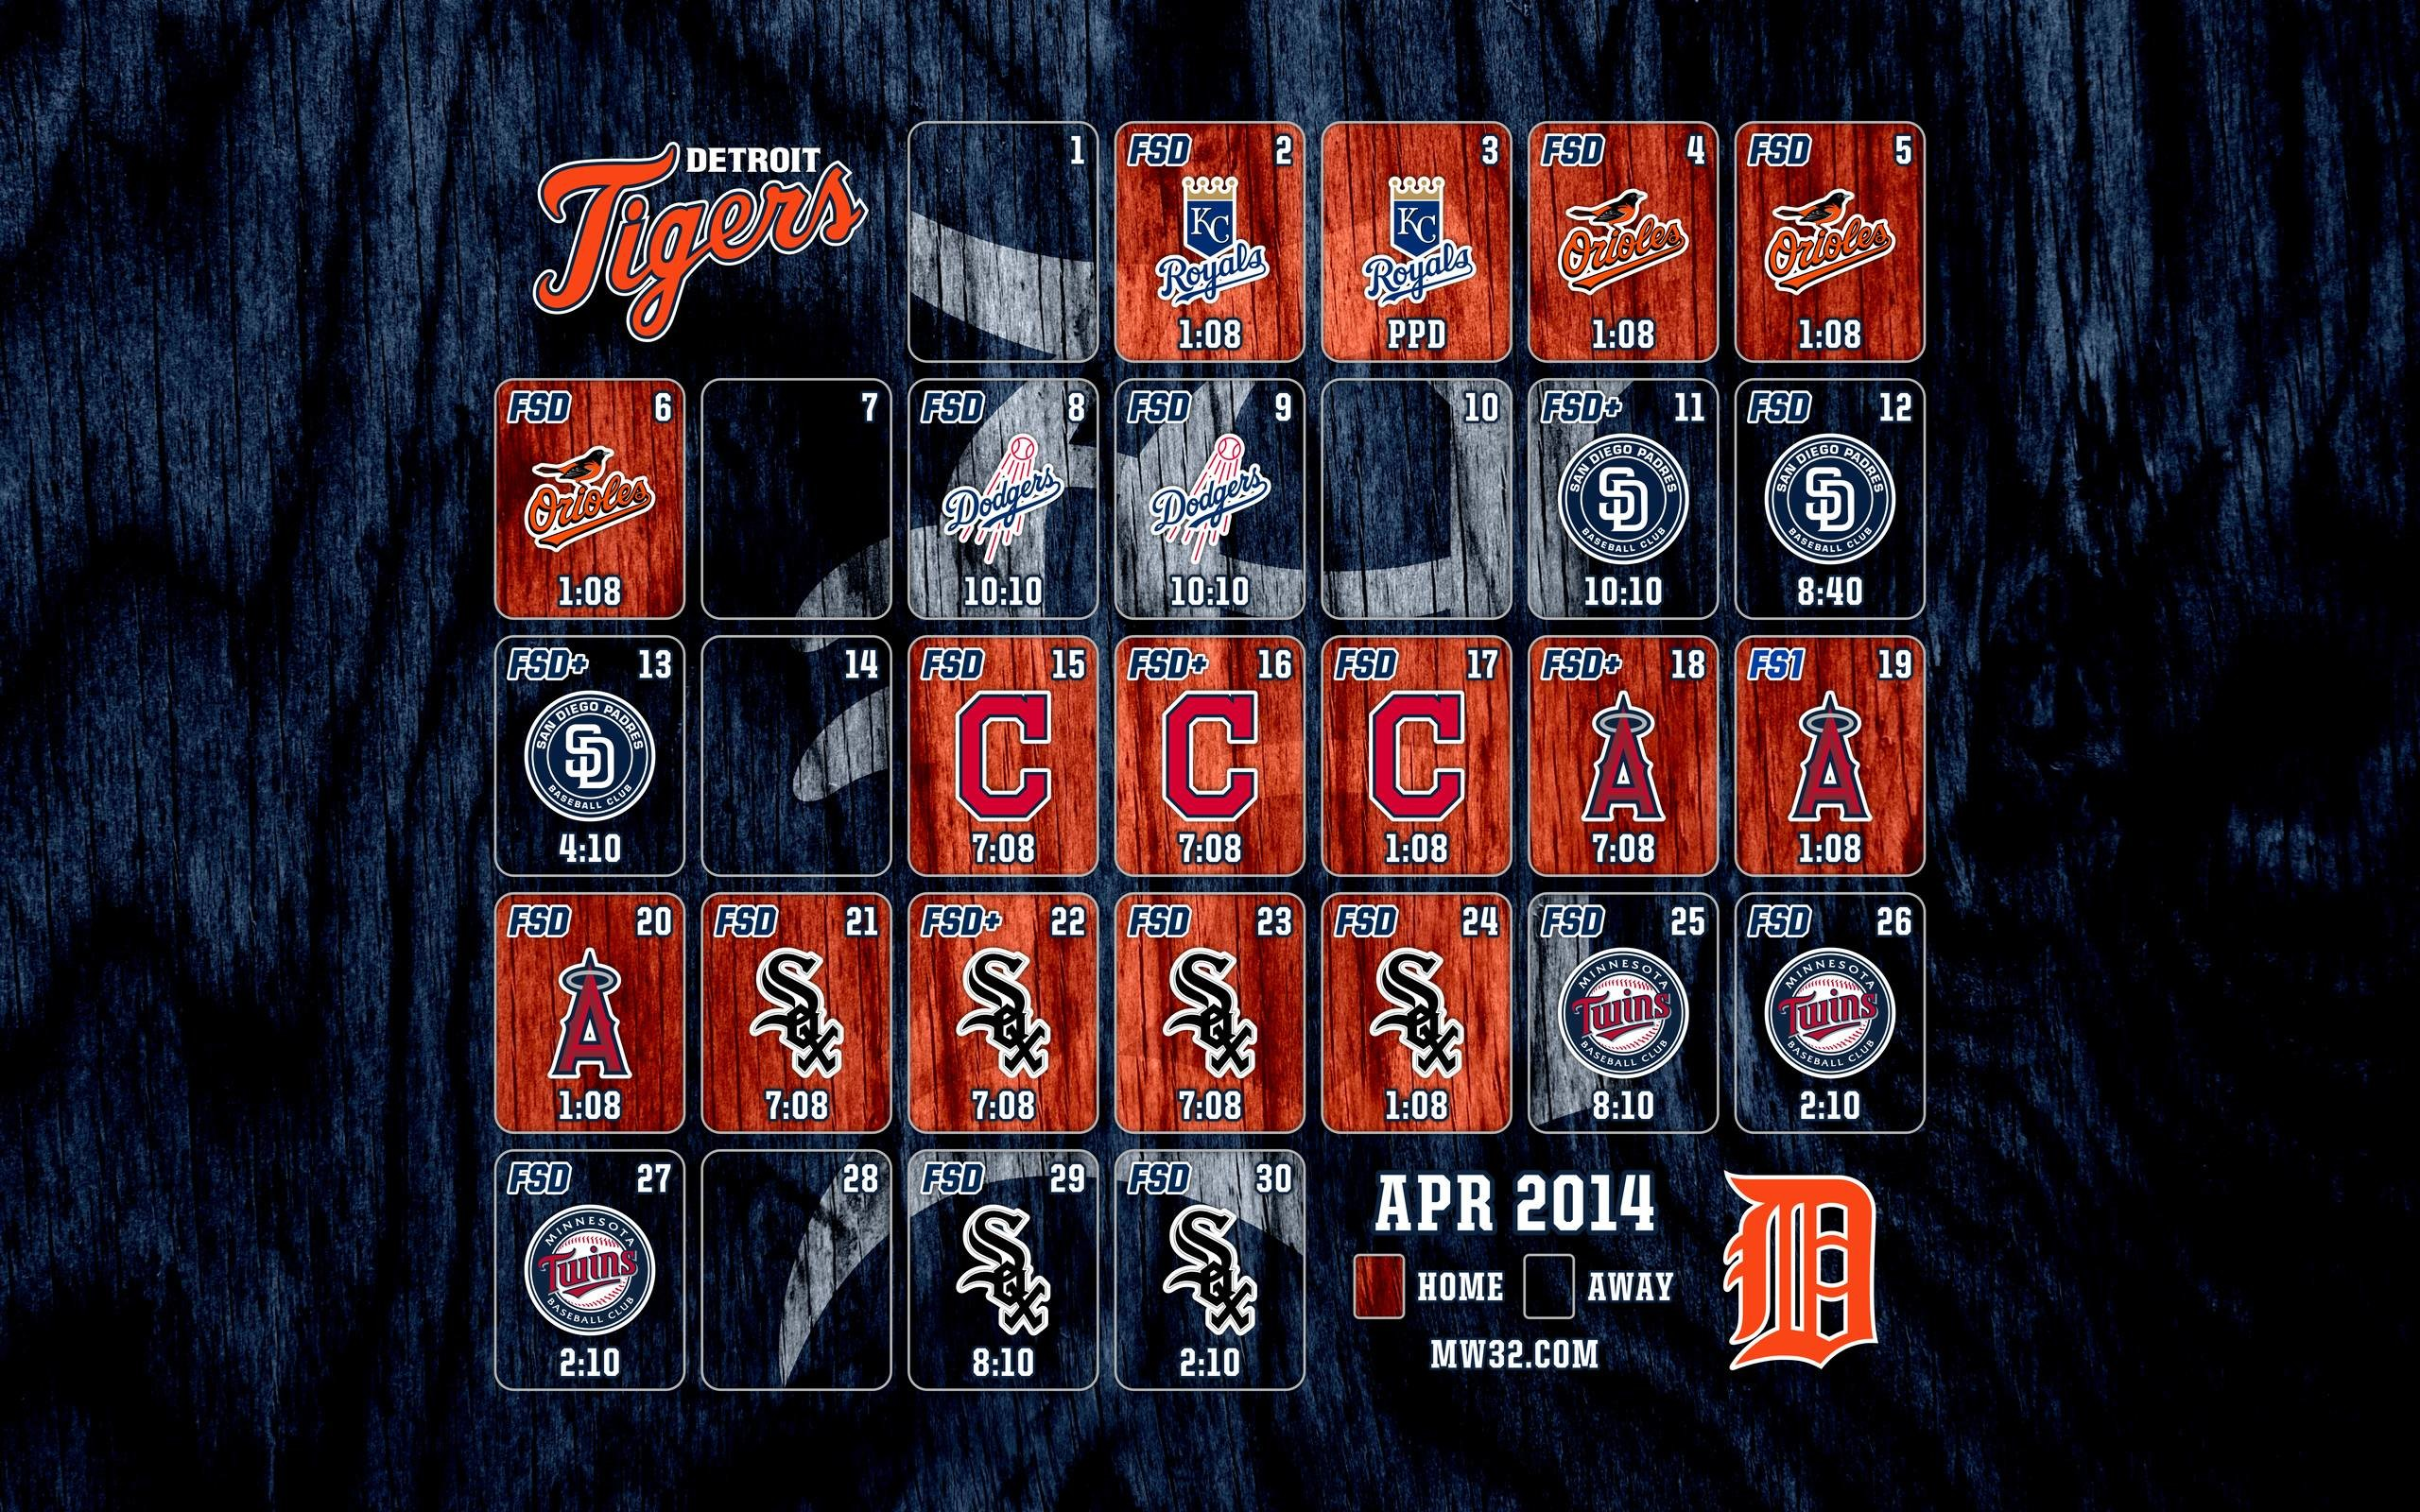 MonkeyWrench32 » April 2014 Schedule Wallpapers